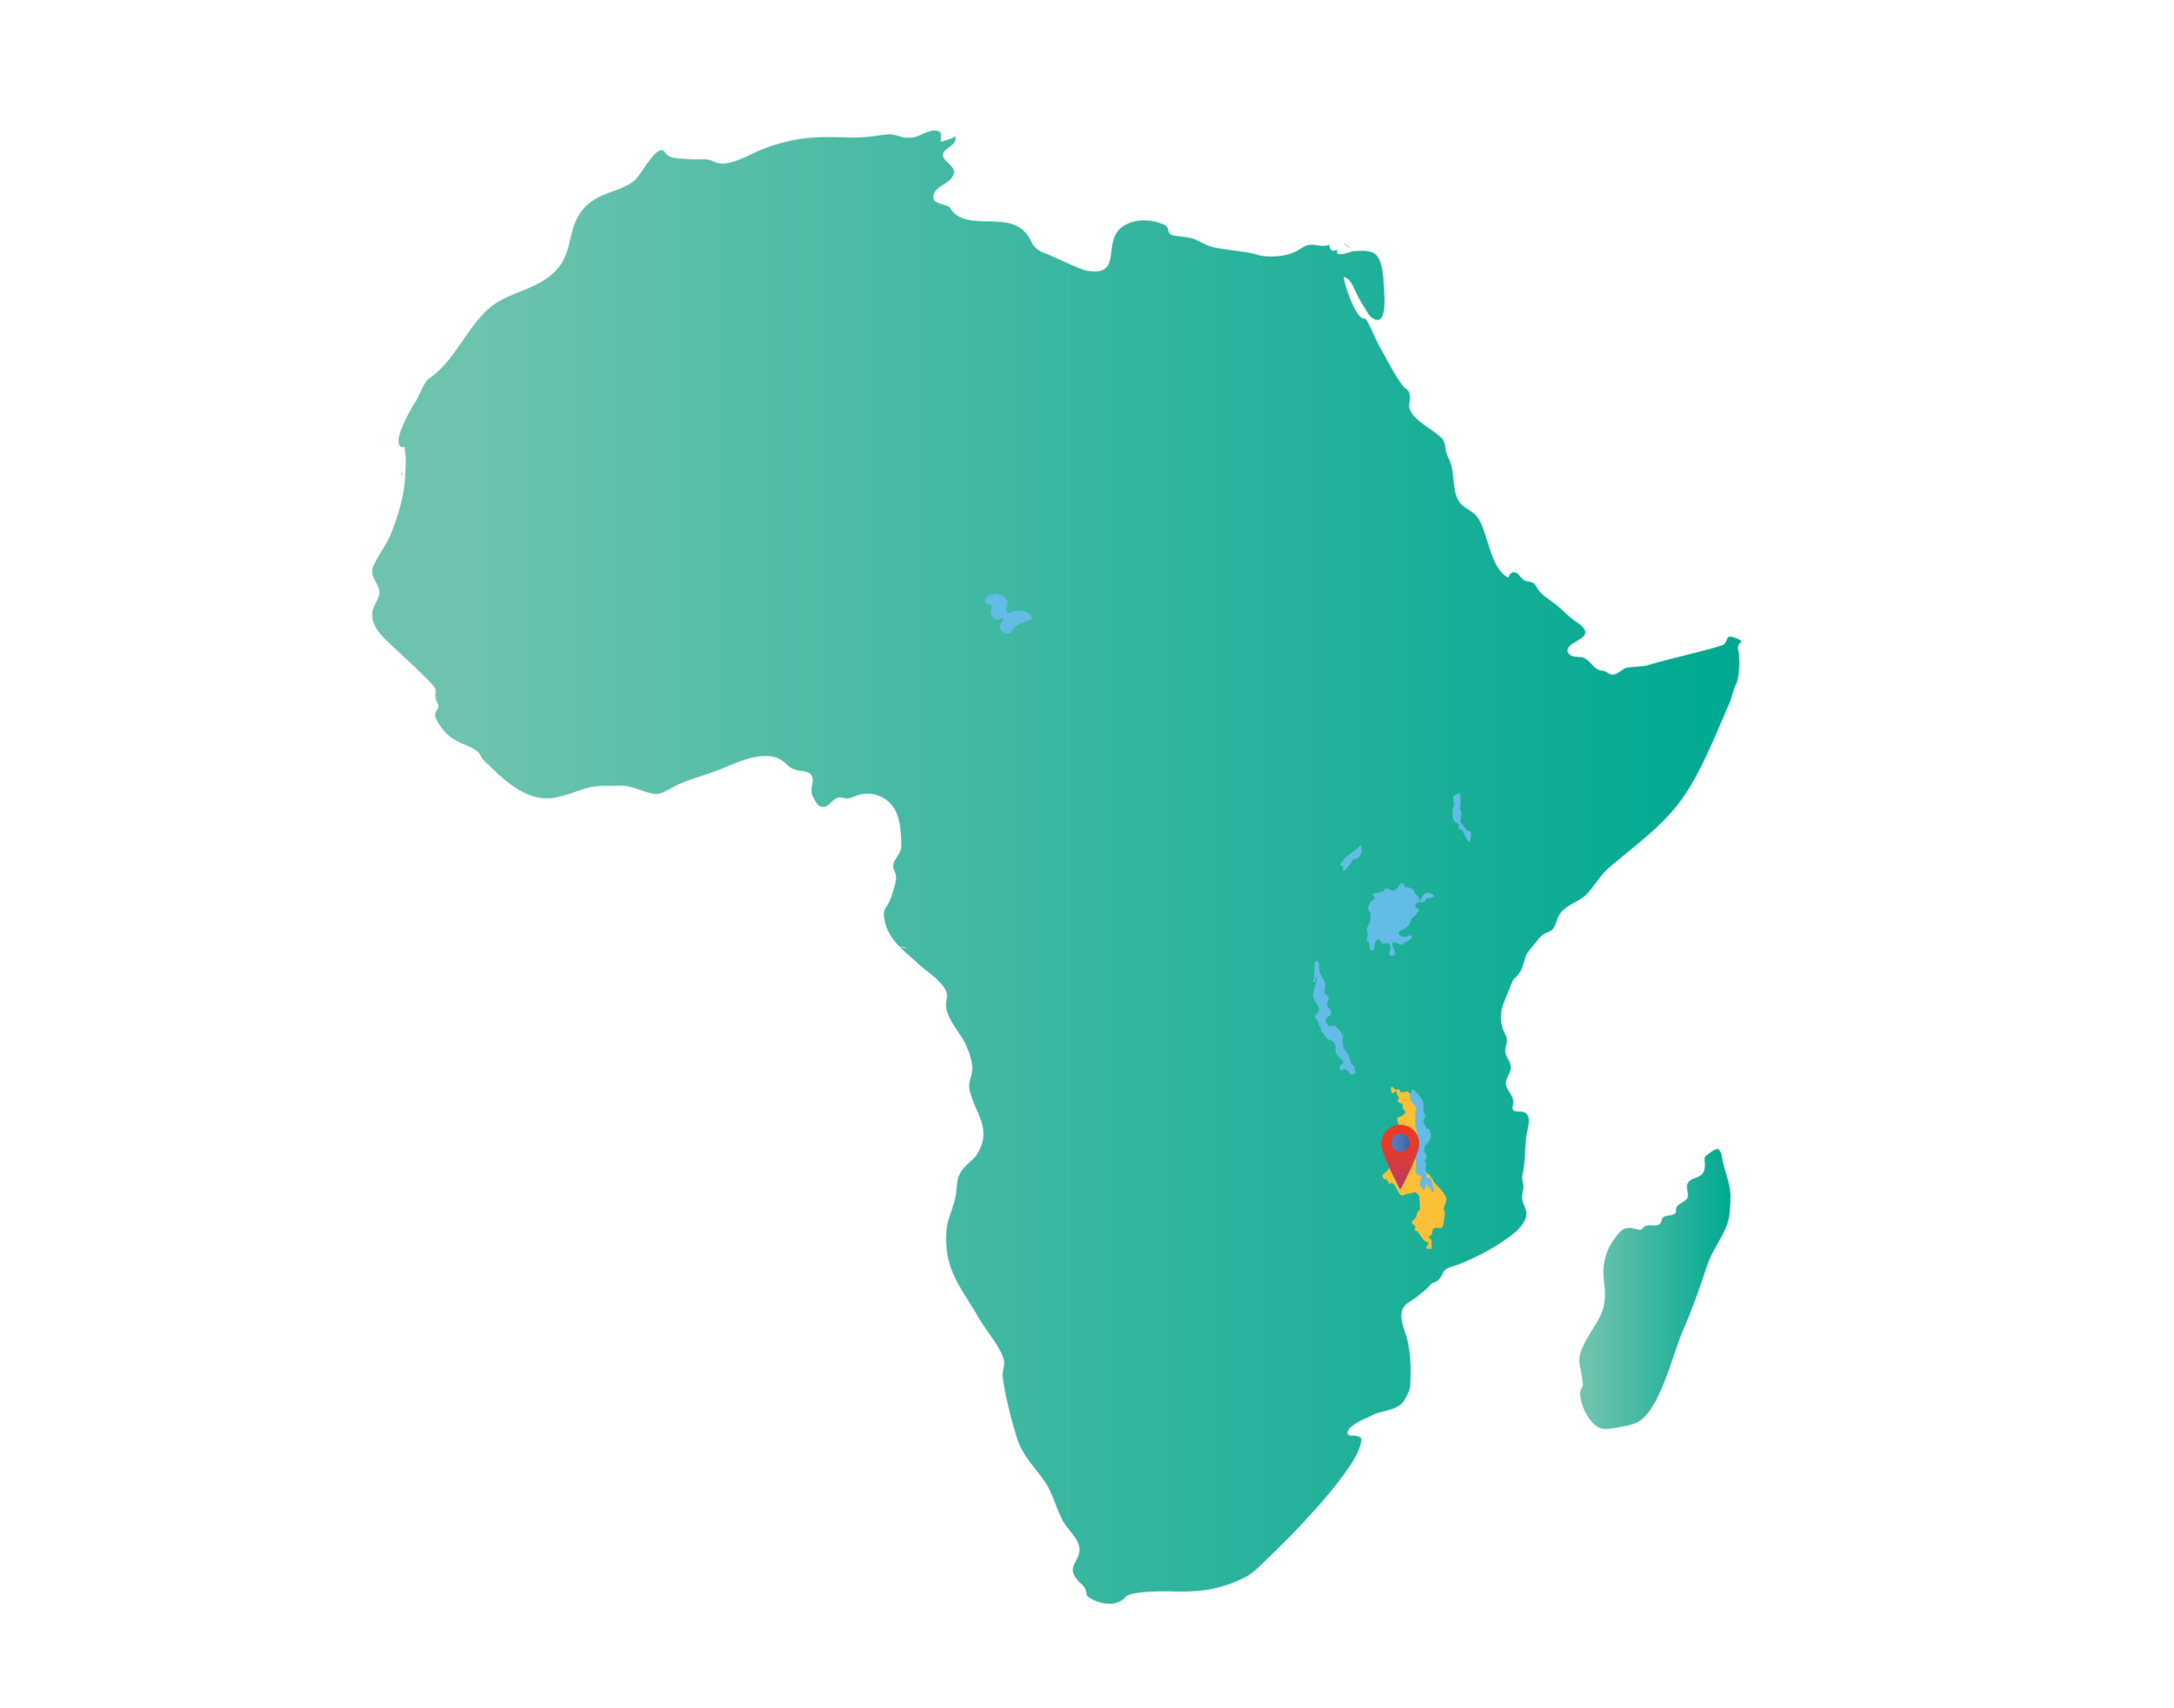 malawi-africa-01.png